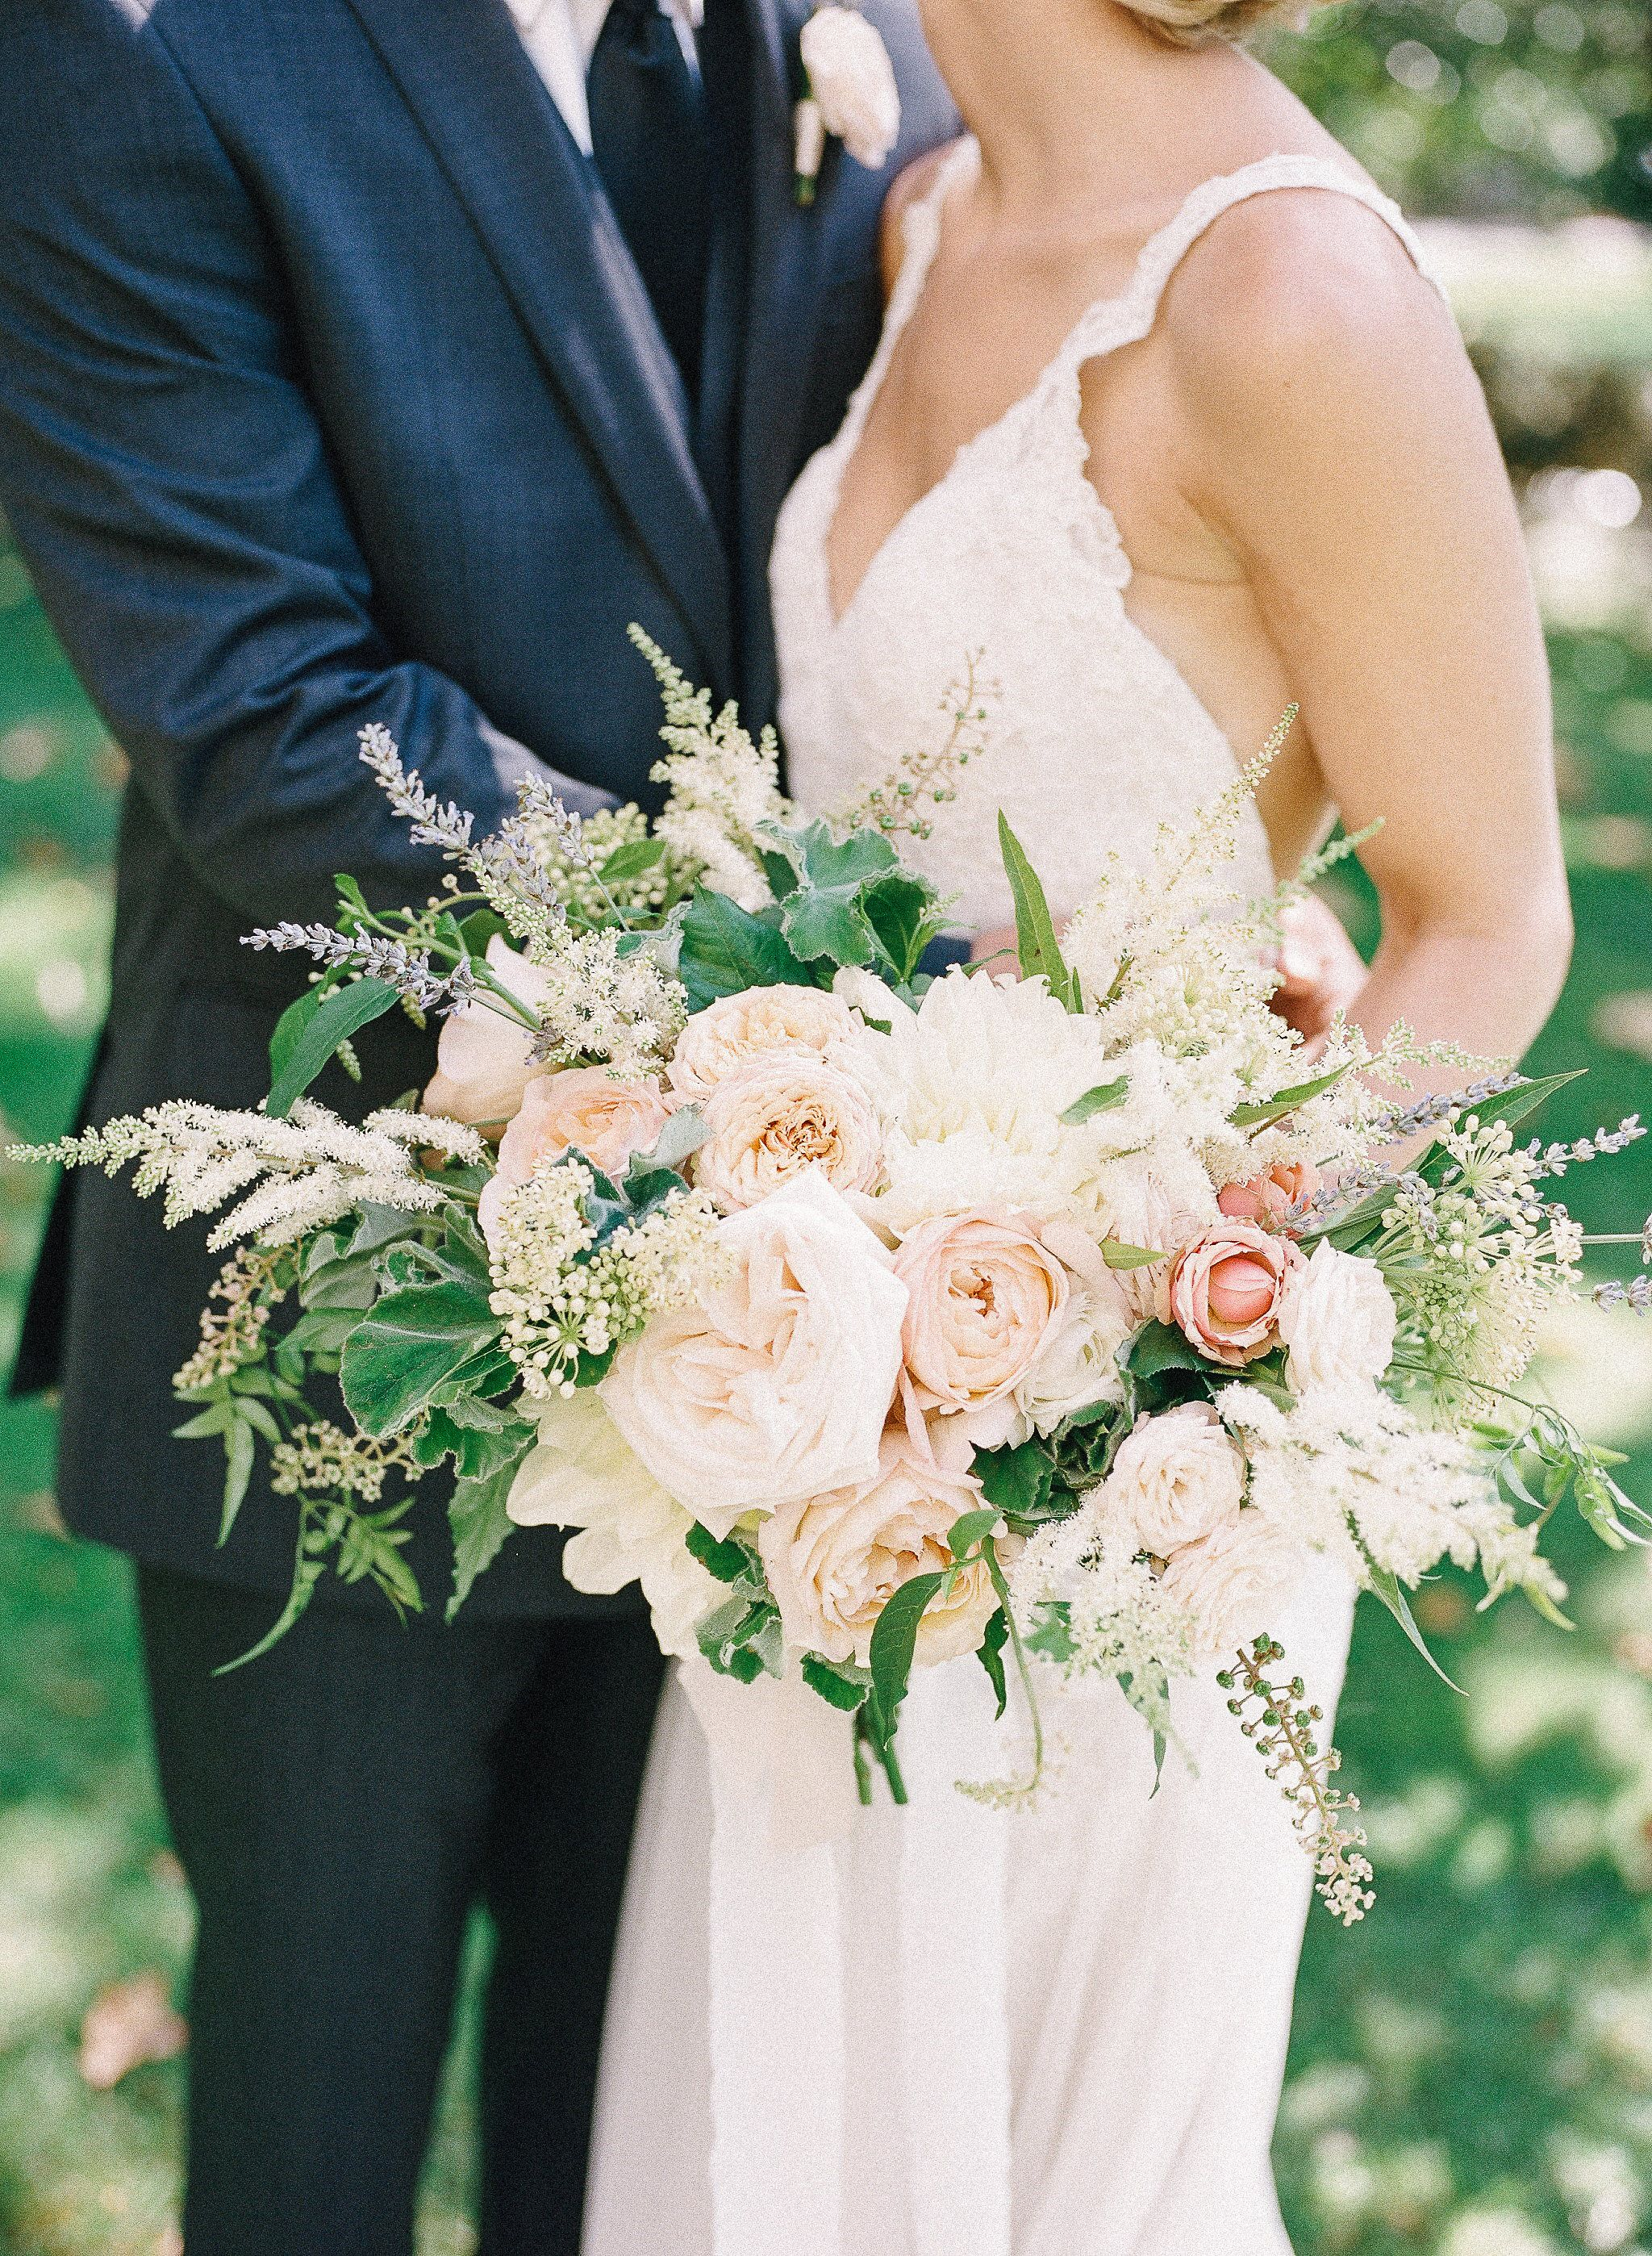 Dreamy Al Fresco California Wedding | Artfully Wed Wedding Blog